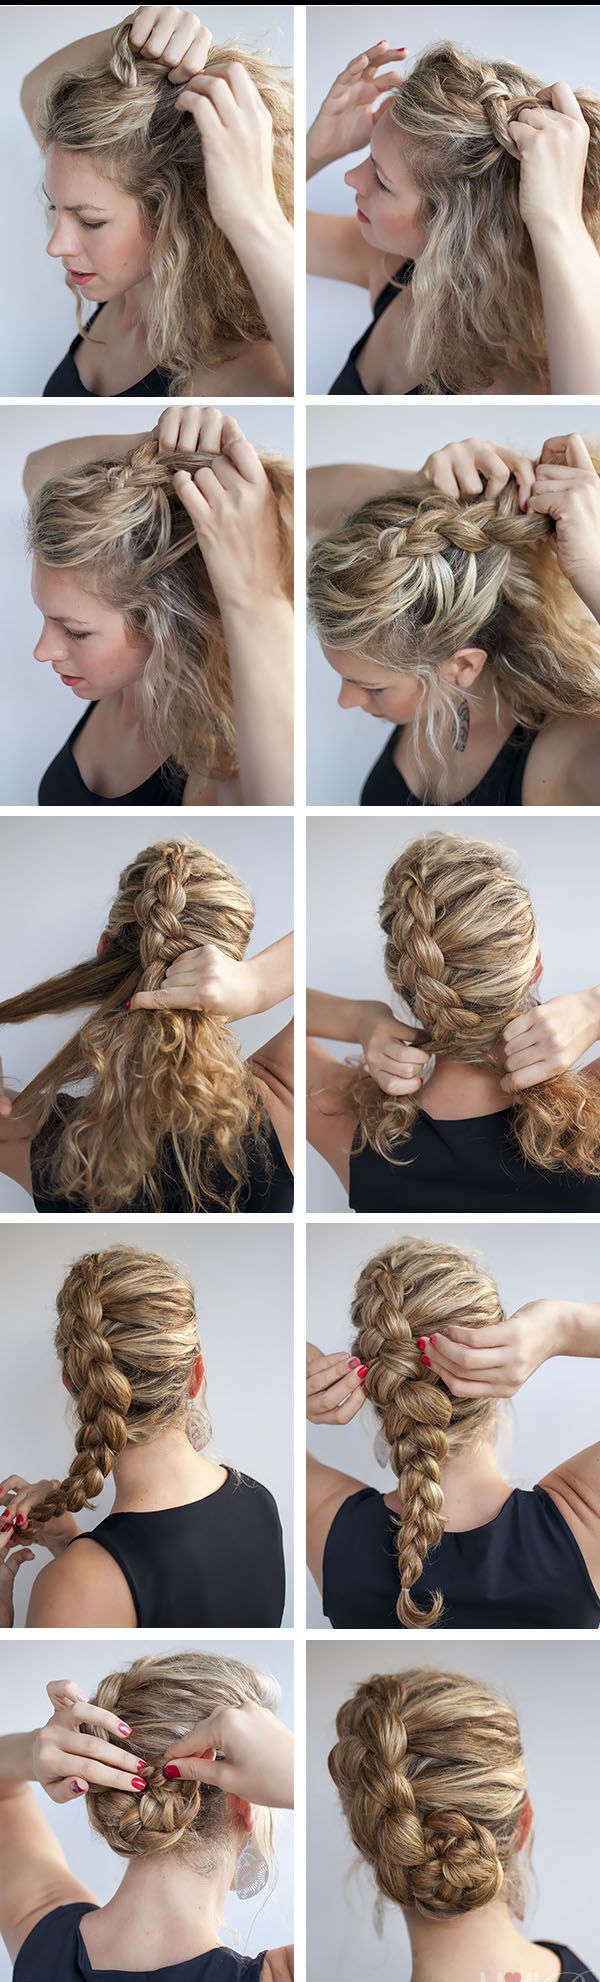 Step-by-step braid hairstyle for long hair